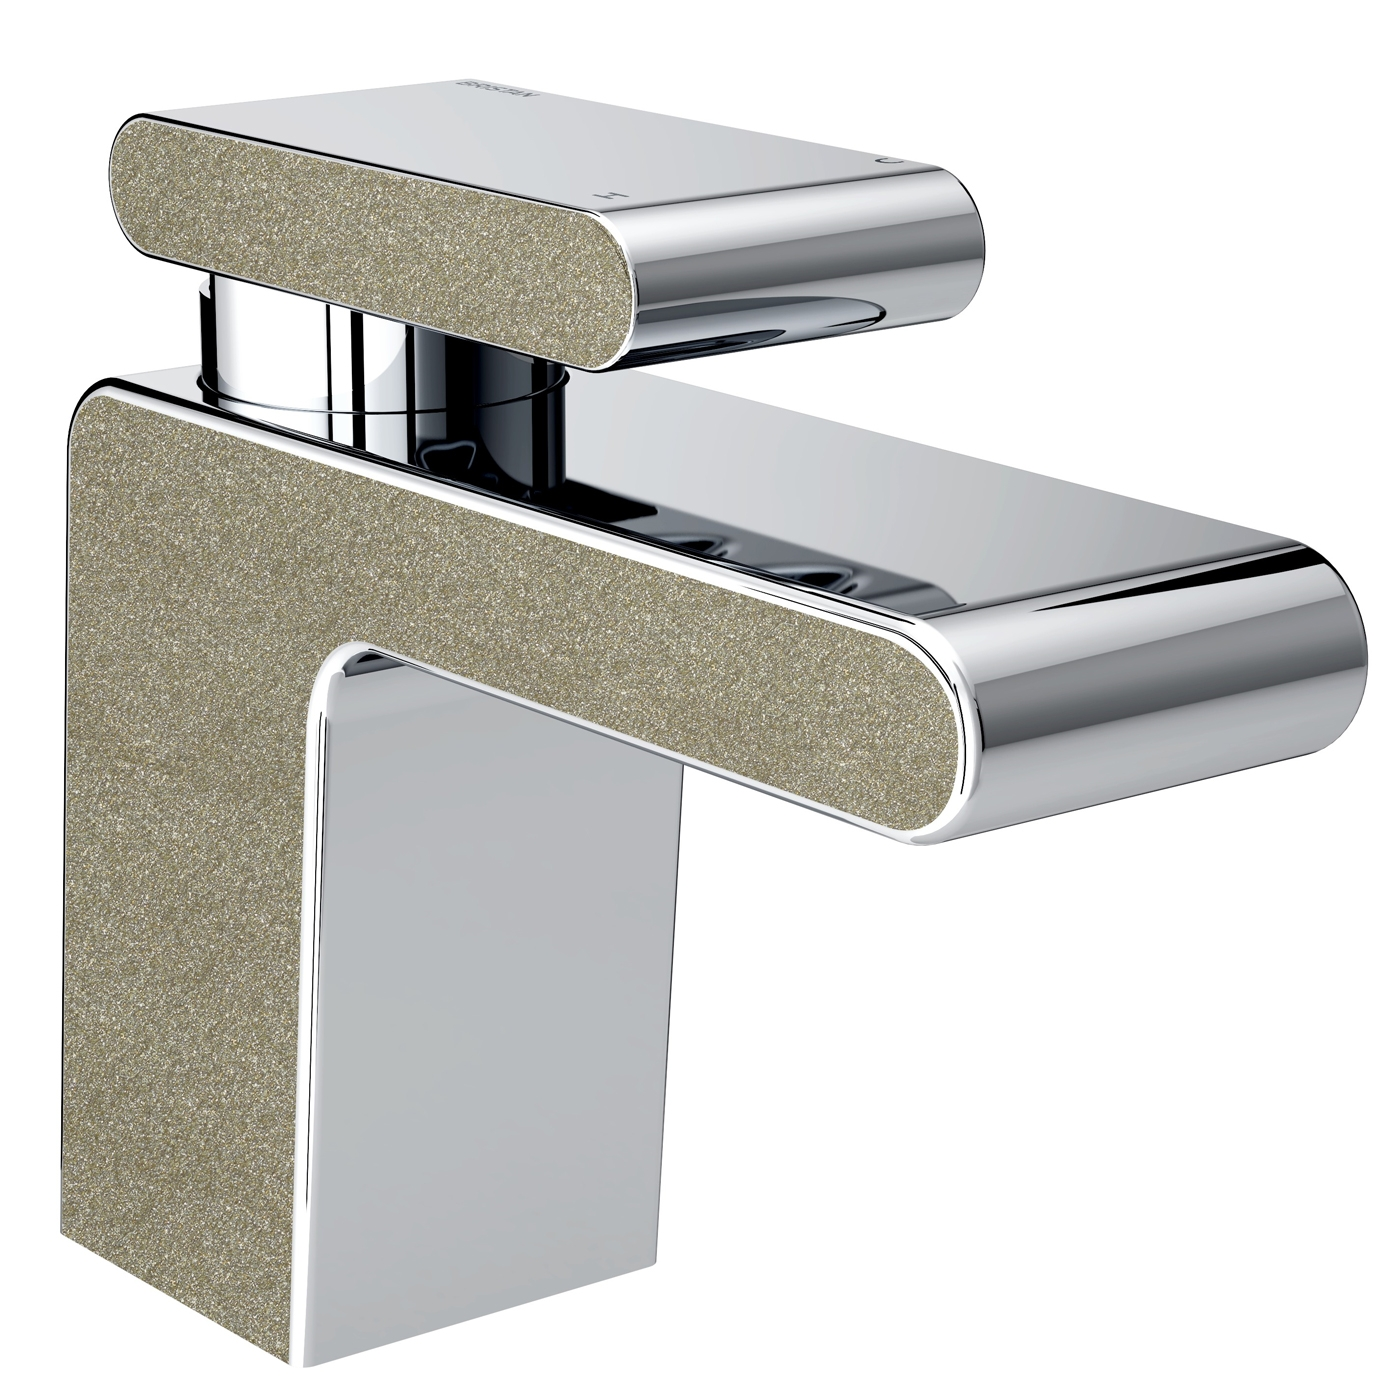 Bristan Metallix Pivot Basin Mixer Tap with Clicker Waste - Champagne Shimmer